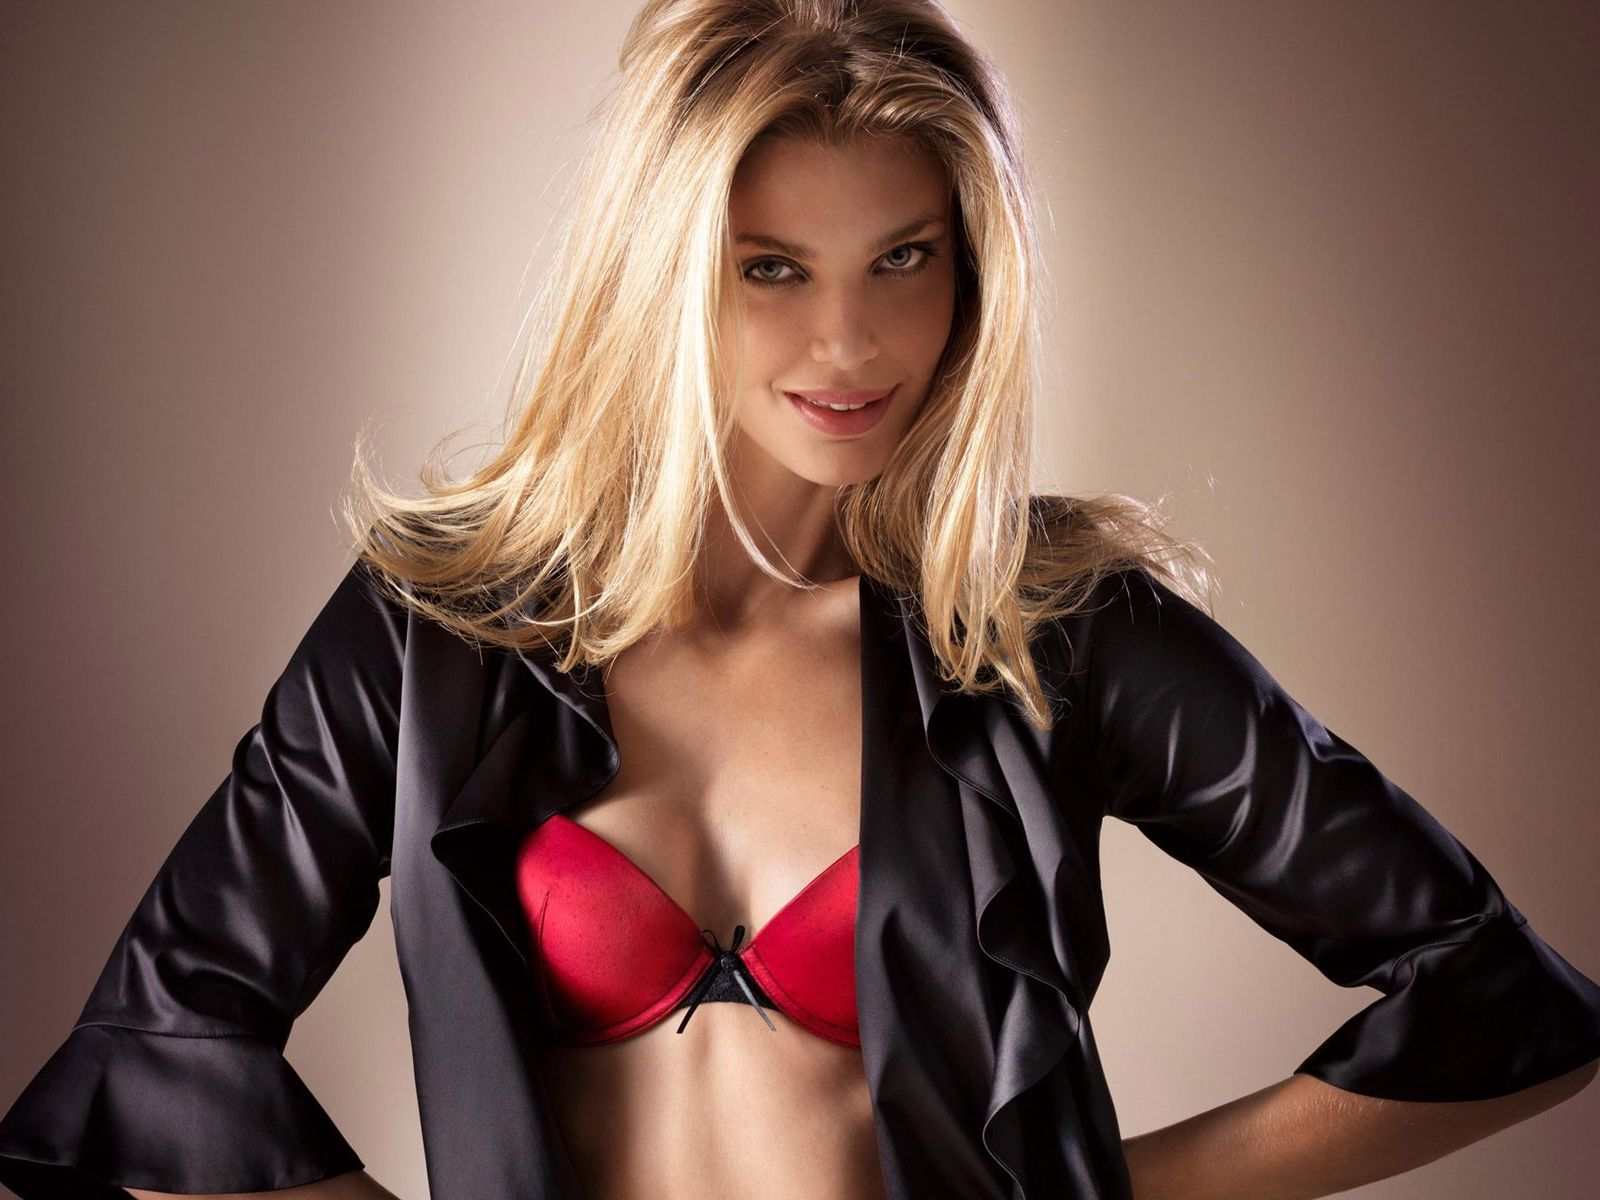 Red,bra Black Satin Jacket